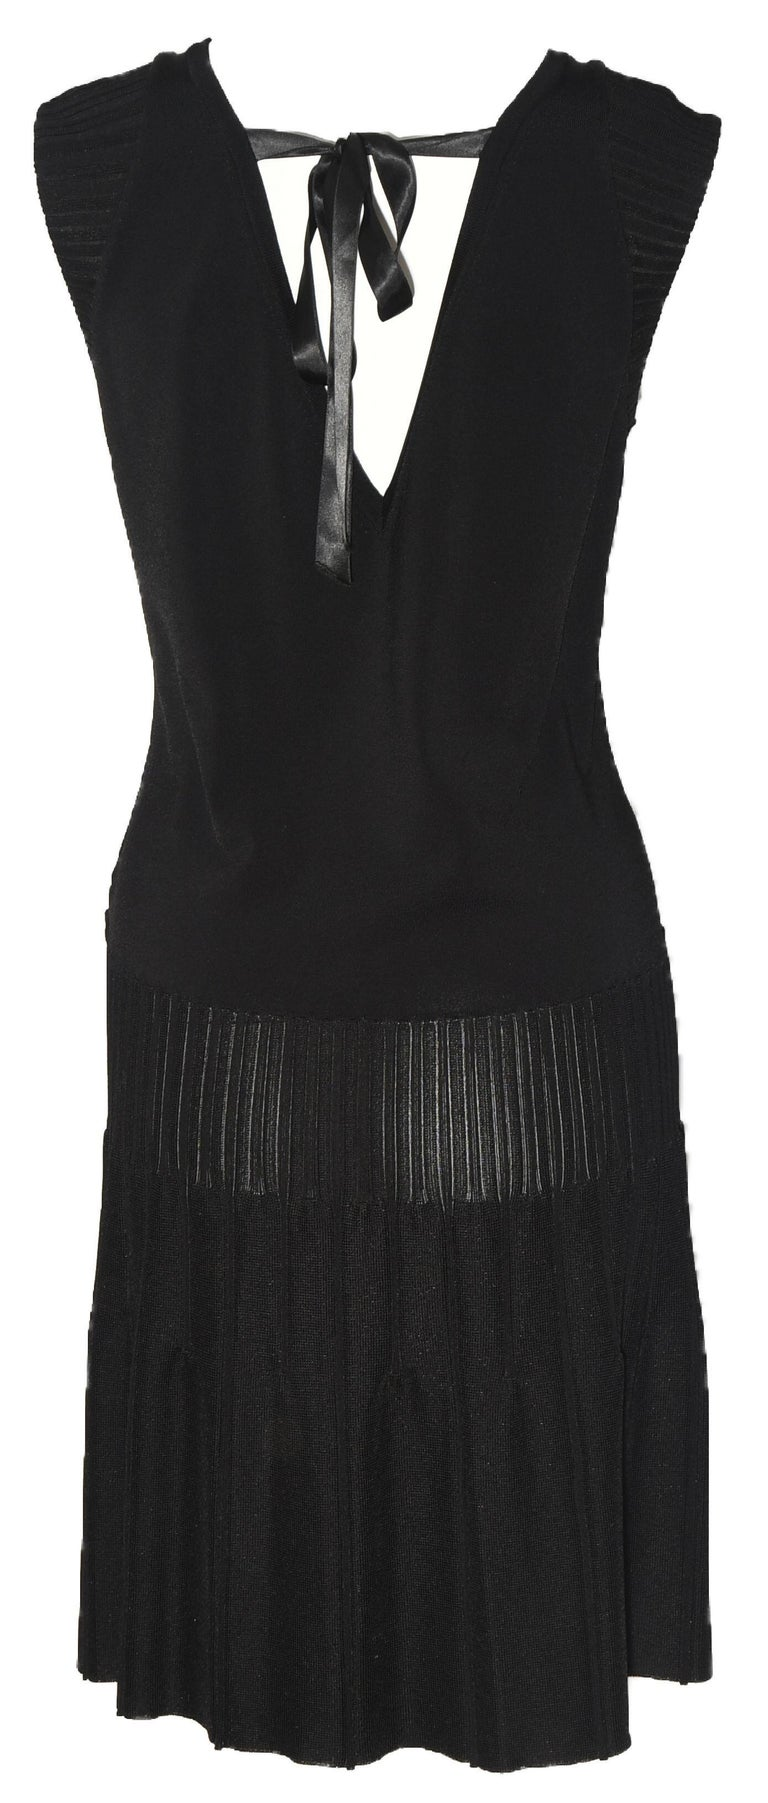 Chanel Black Sleeveless Dress with Peek a boo V Back In Excellent Condition For Sale In Palm Beach, FL